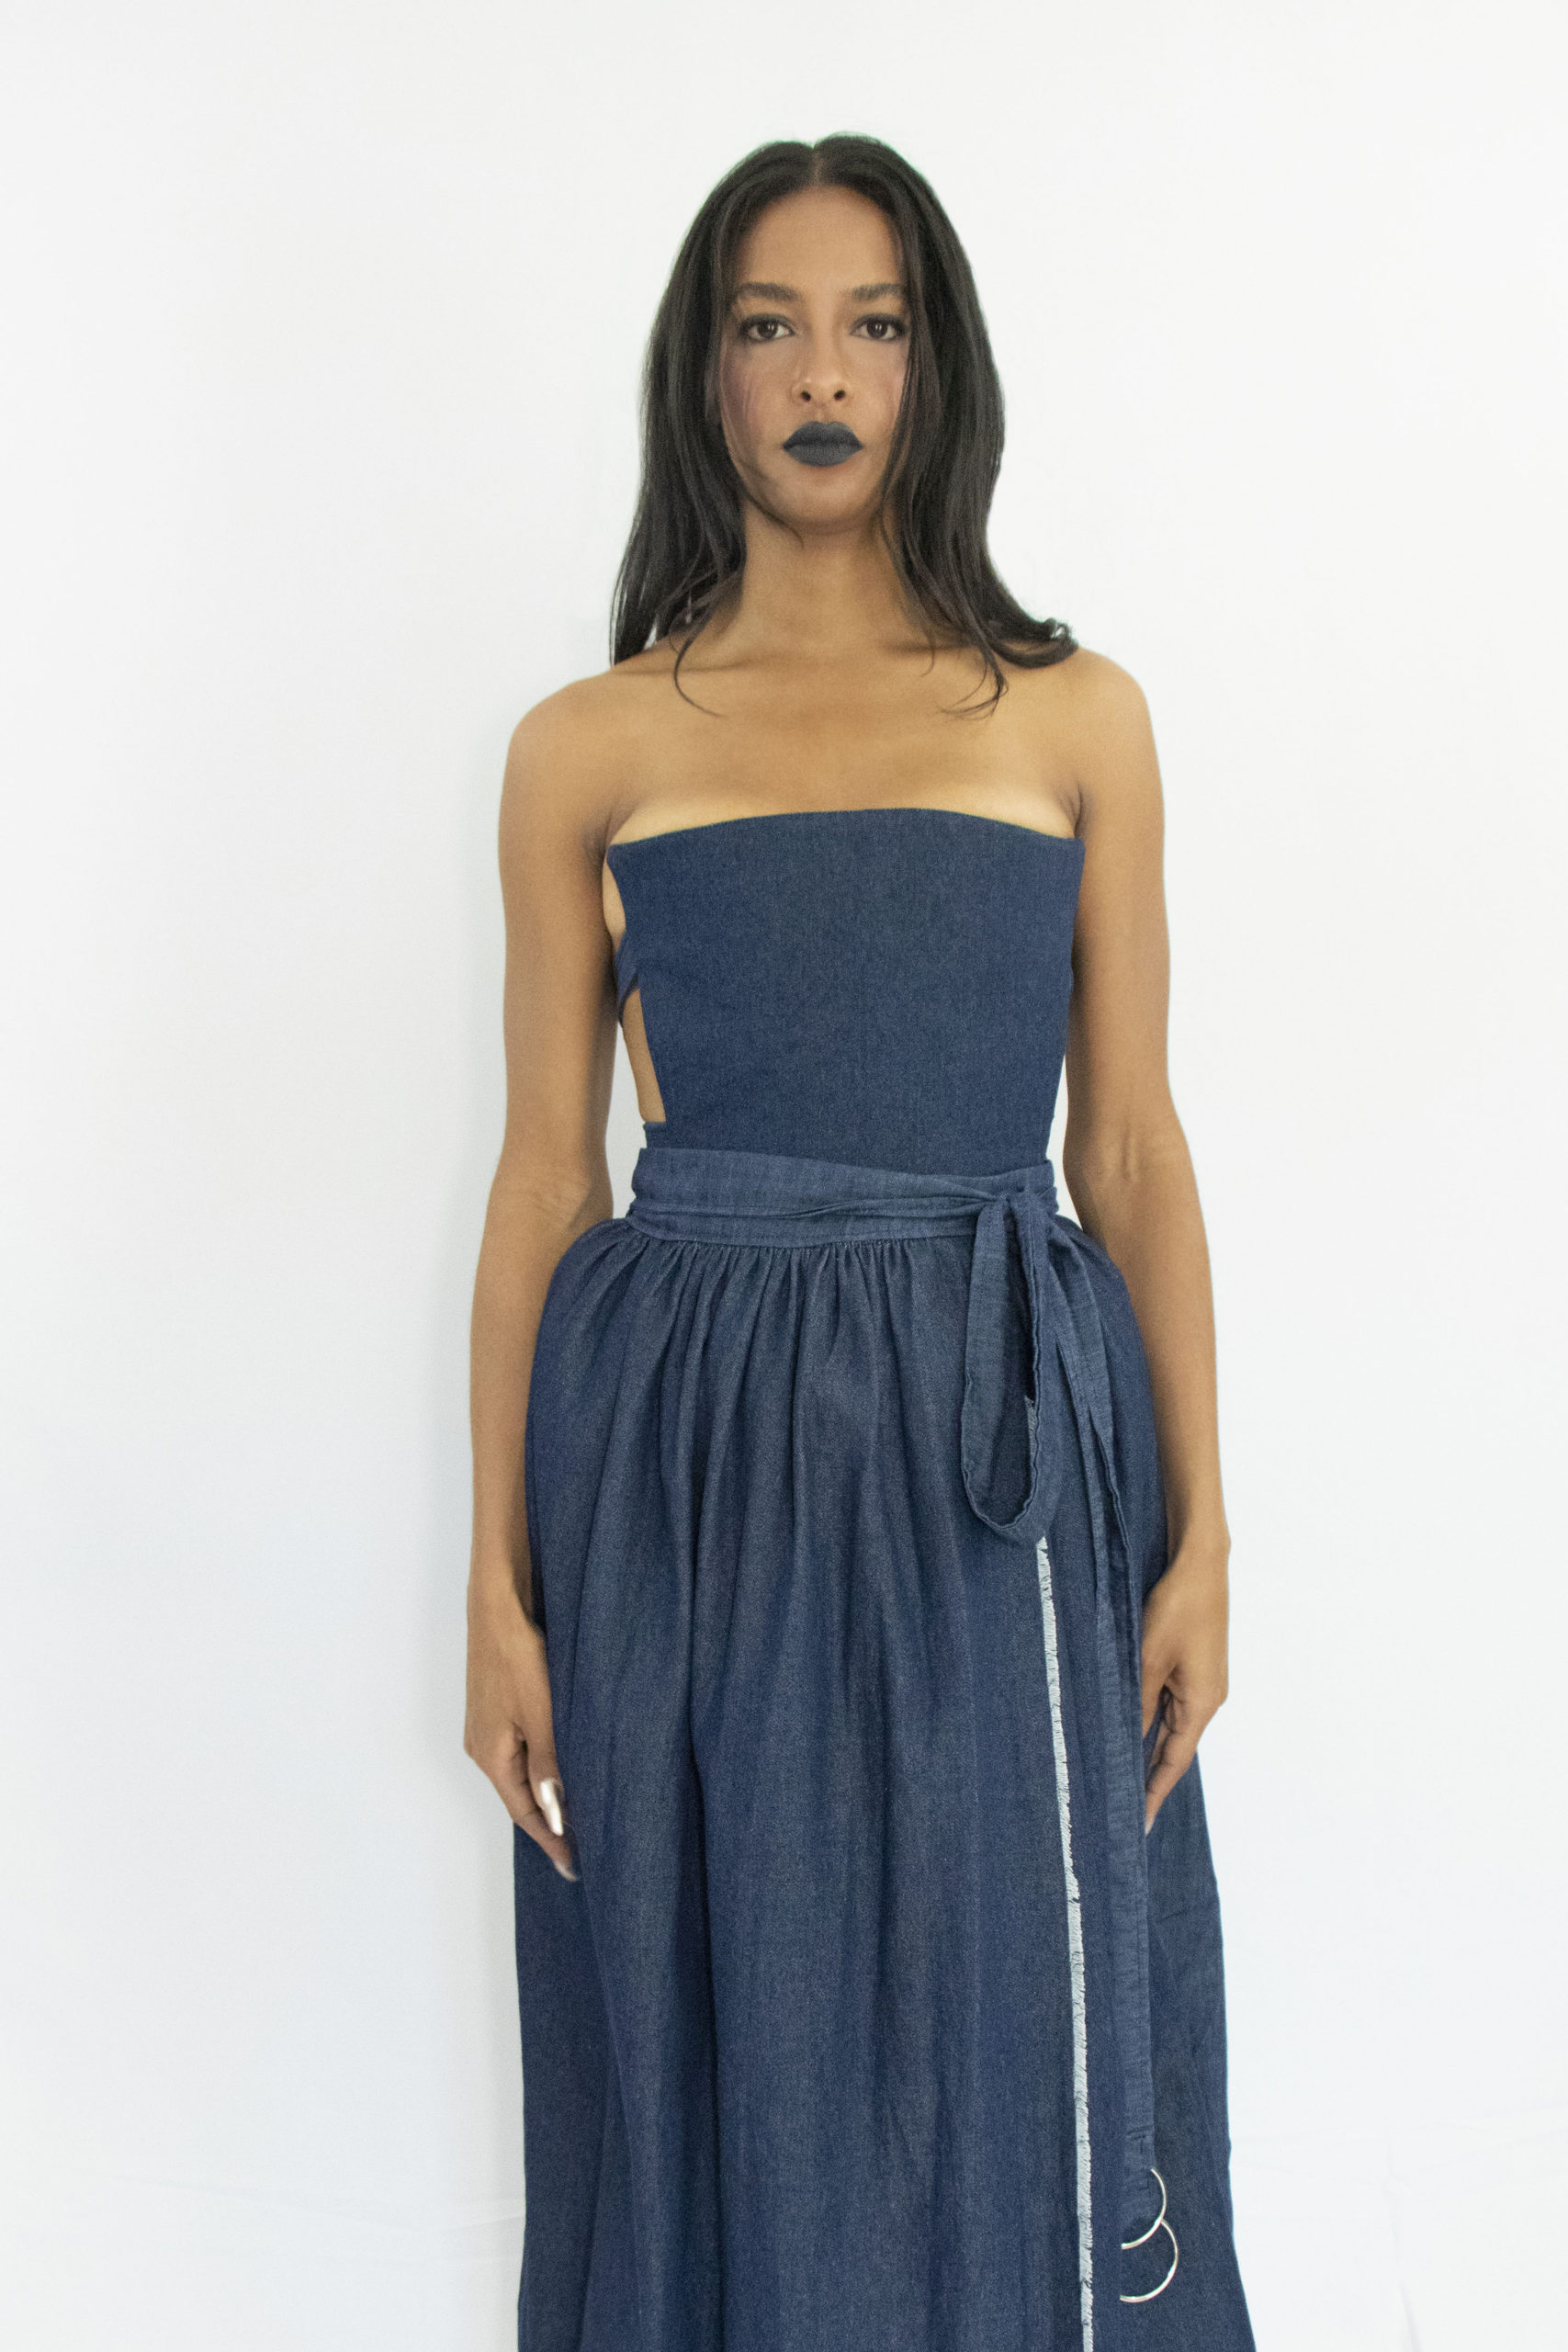 Woman wearing dark blue denim corset with straps buckled and tied at the back in zero waste cotton